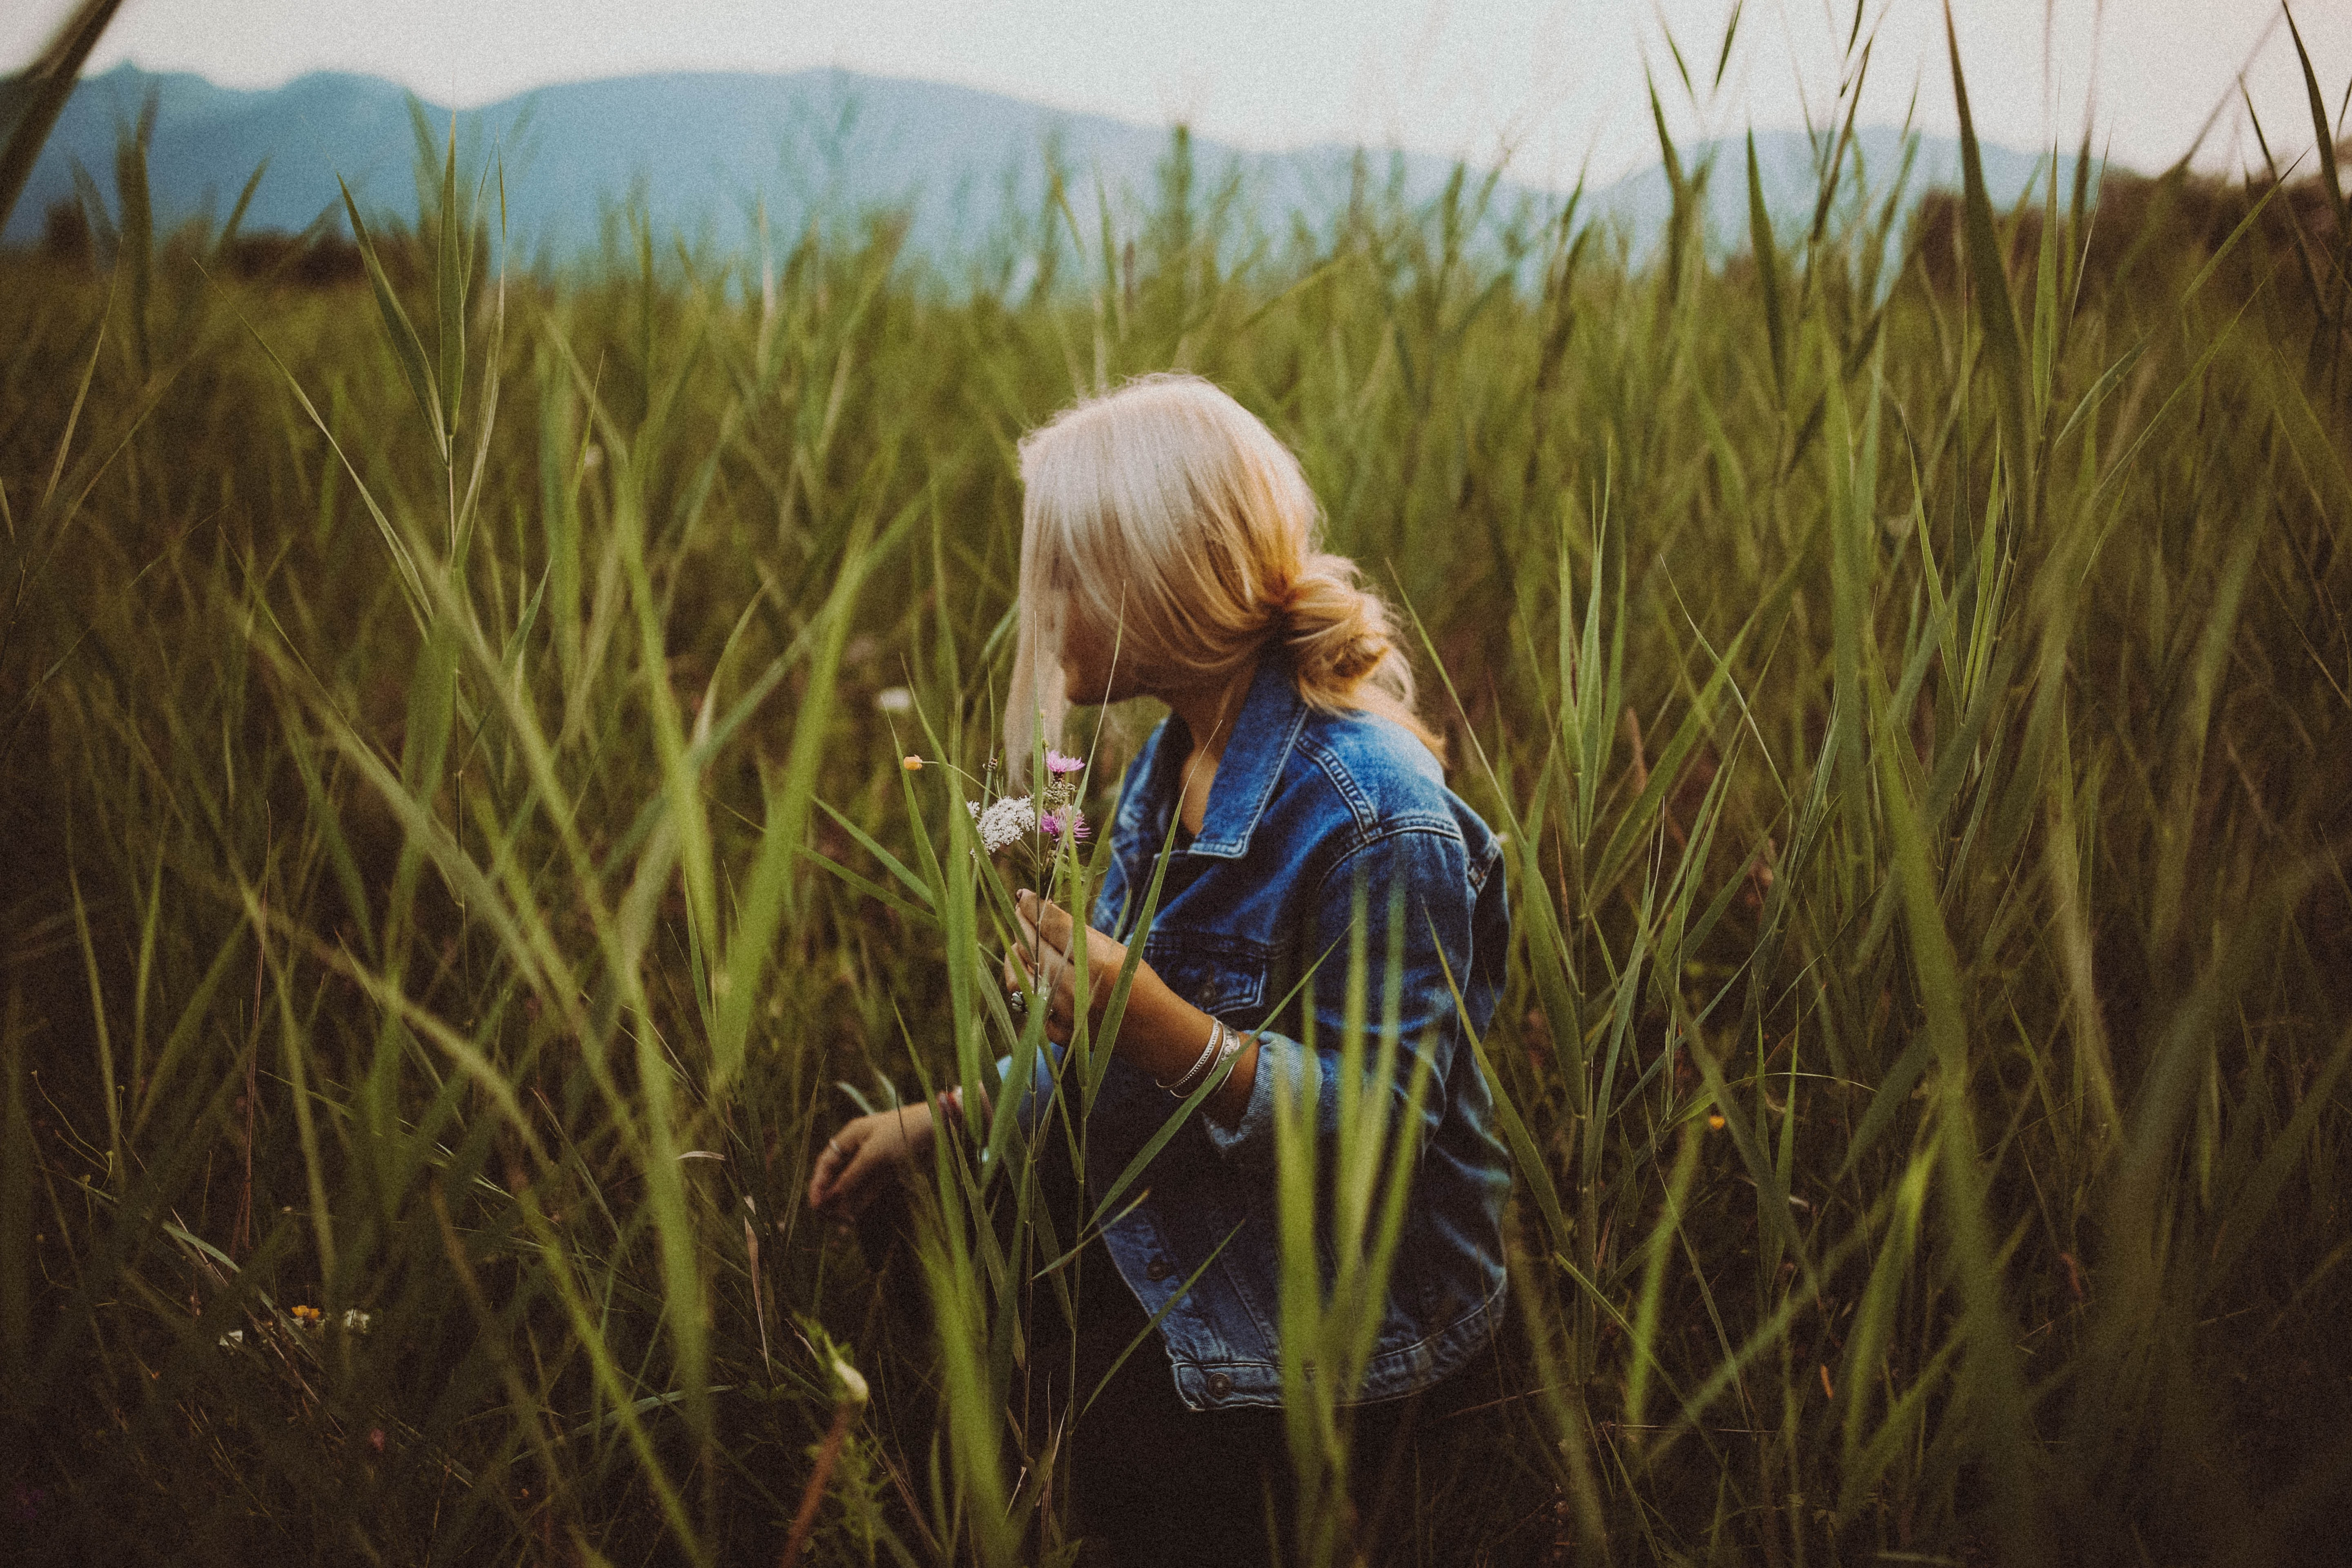 Woman walks alone through field of tall grass with wildflowers